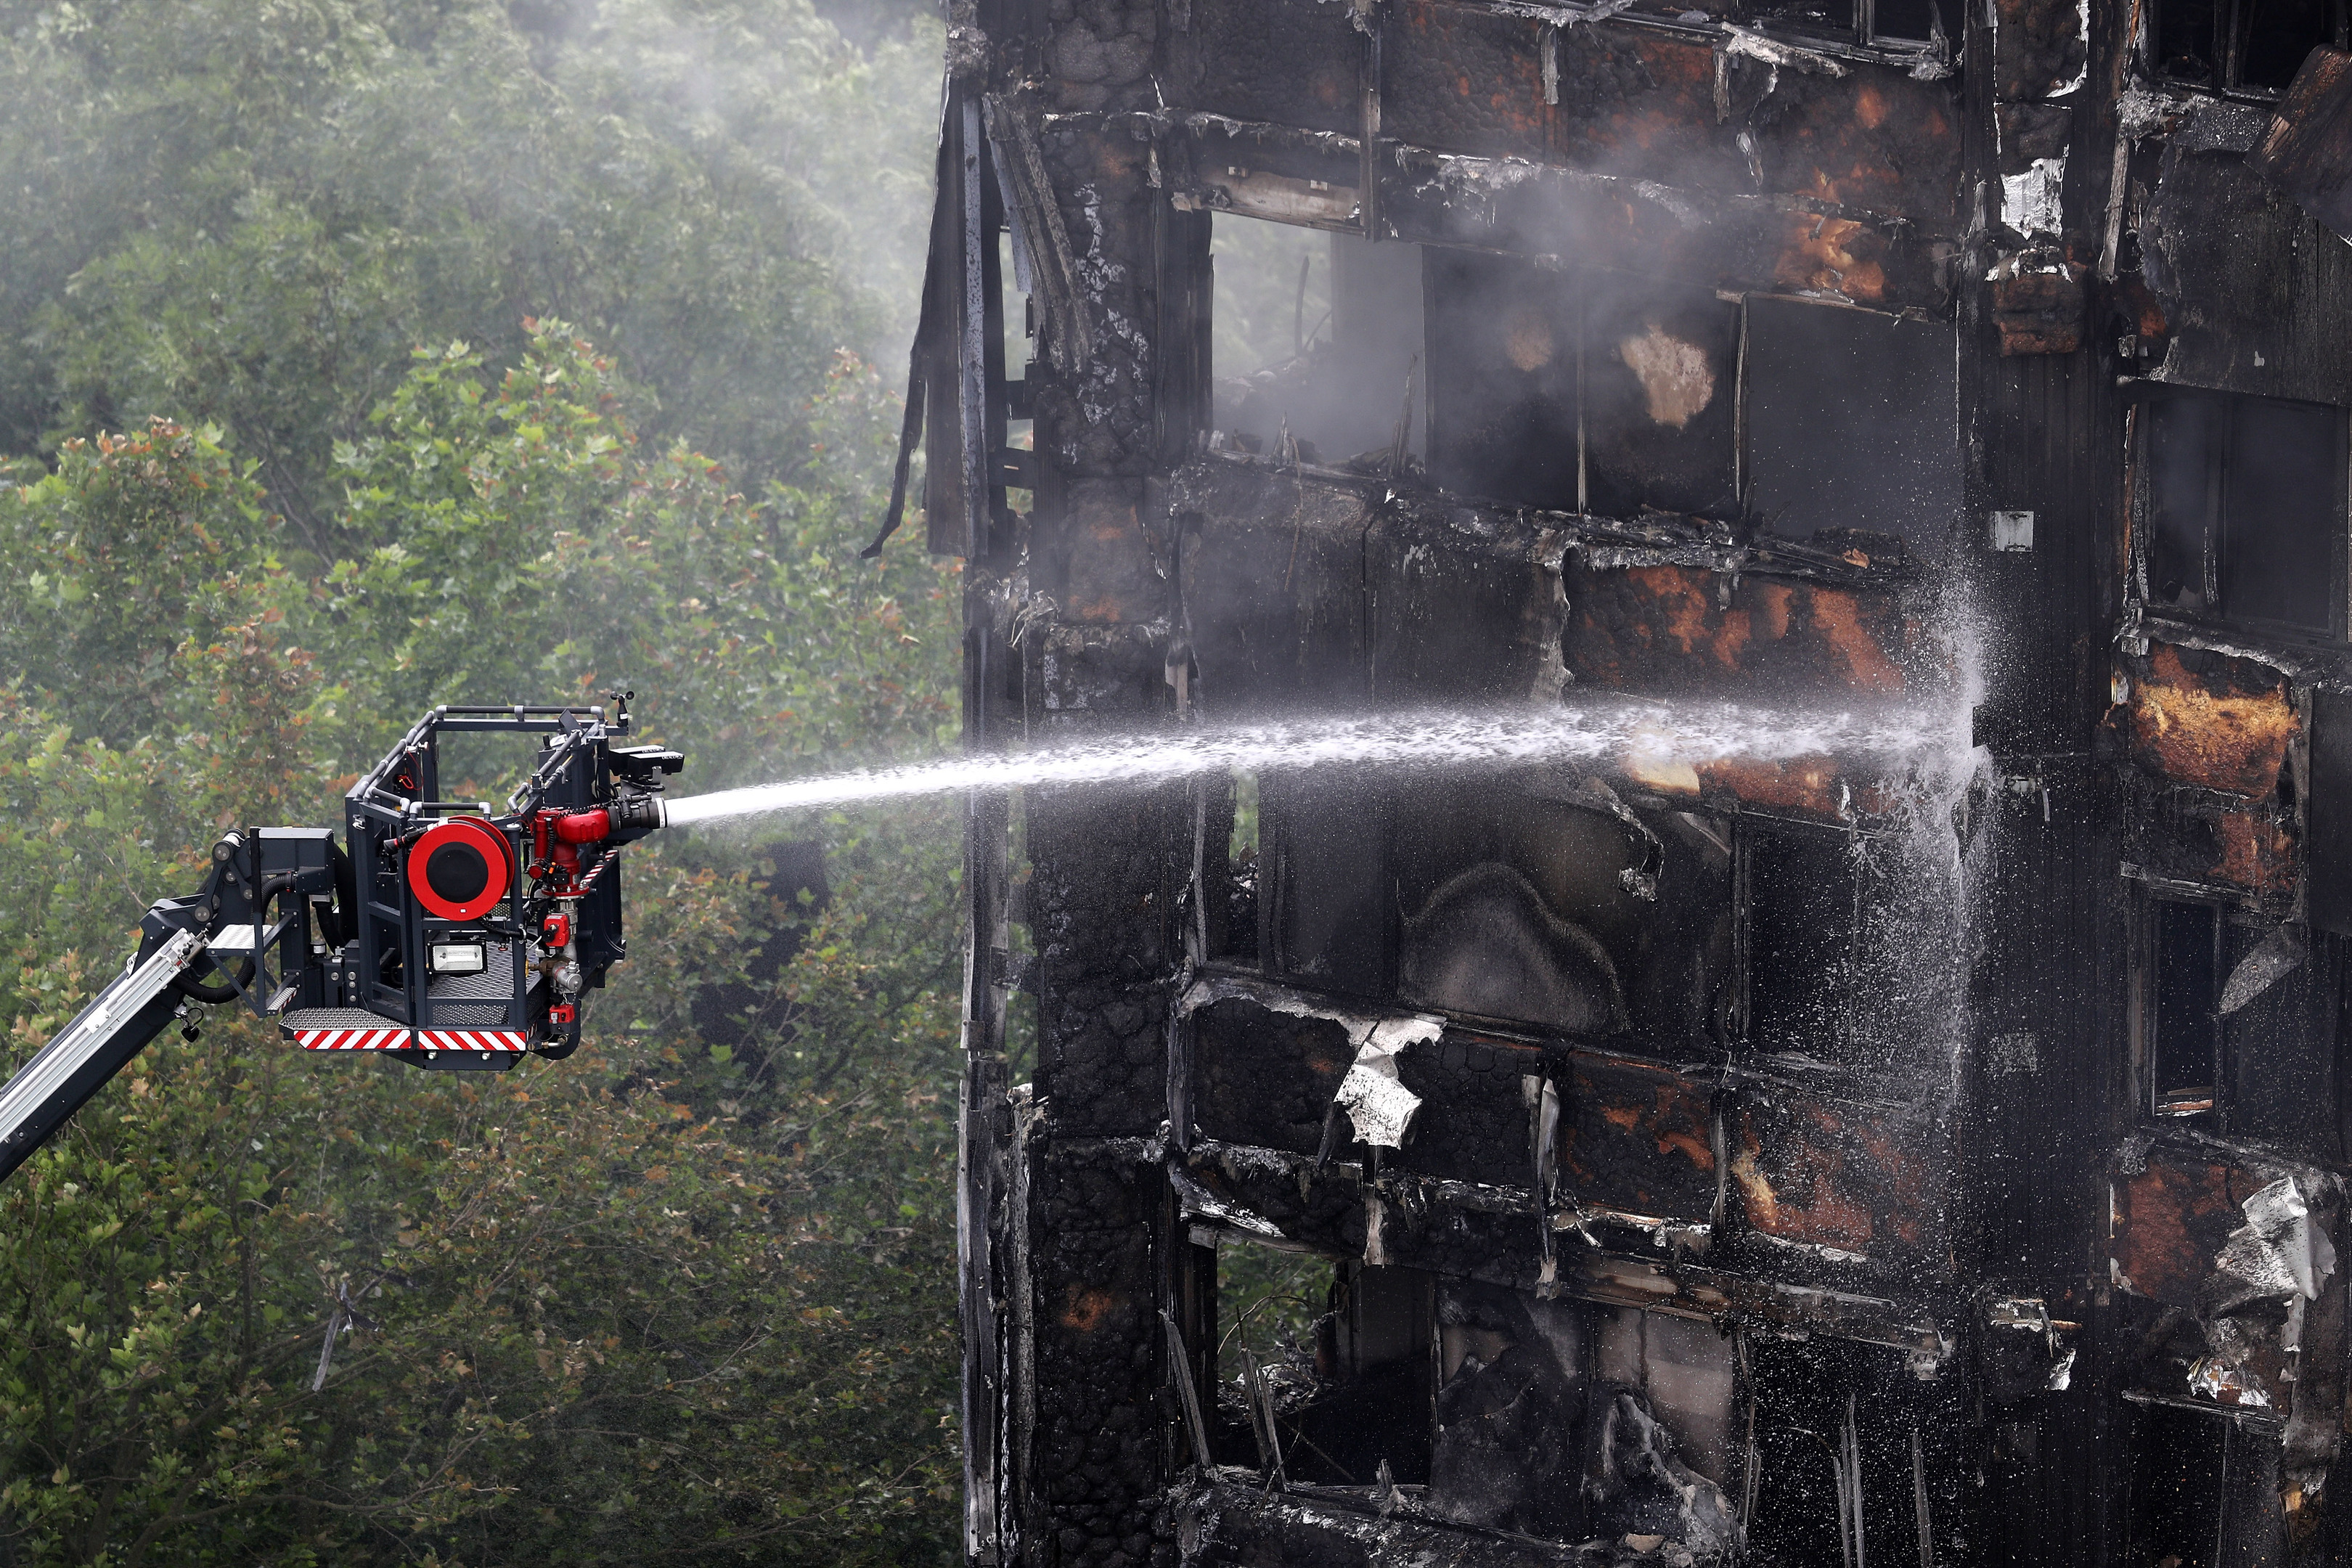 A firefighter continues to douse the fire at Grenfell Tower on June 15.